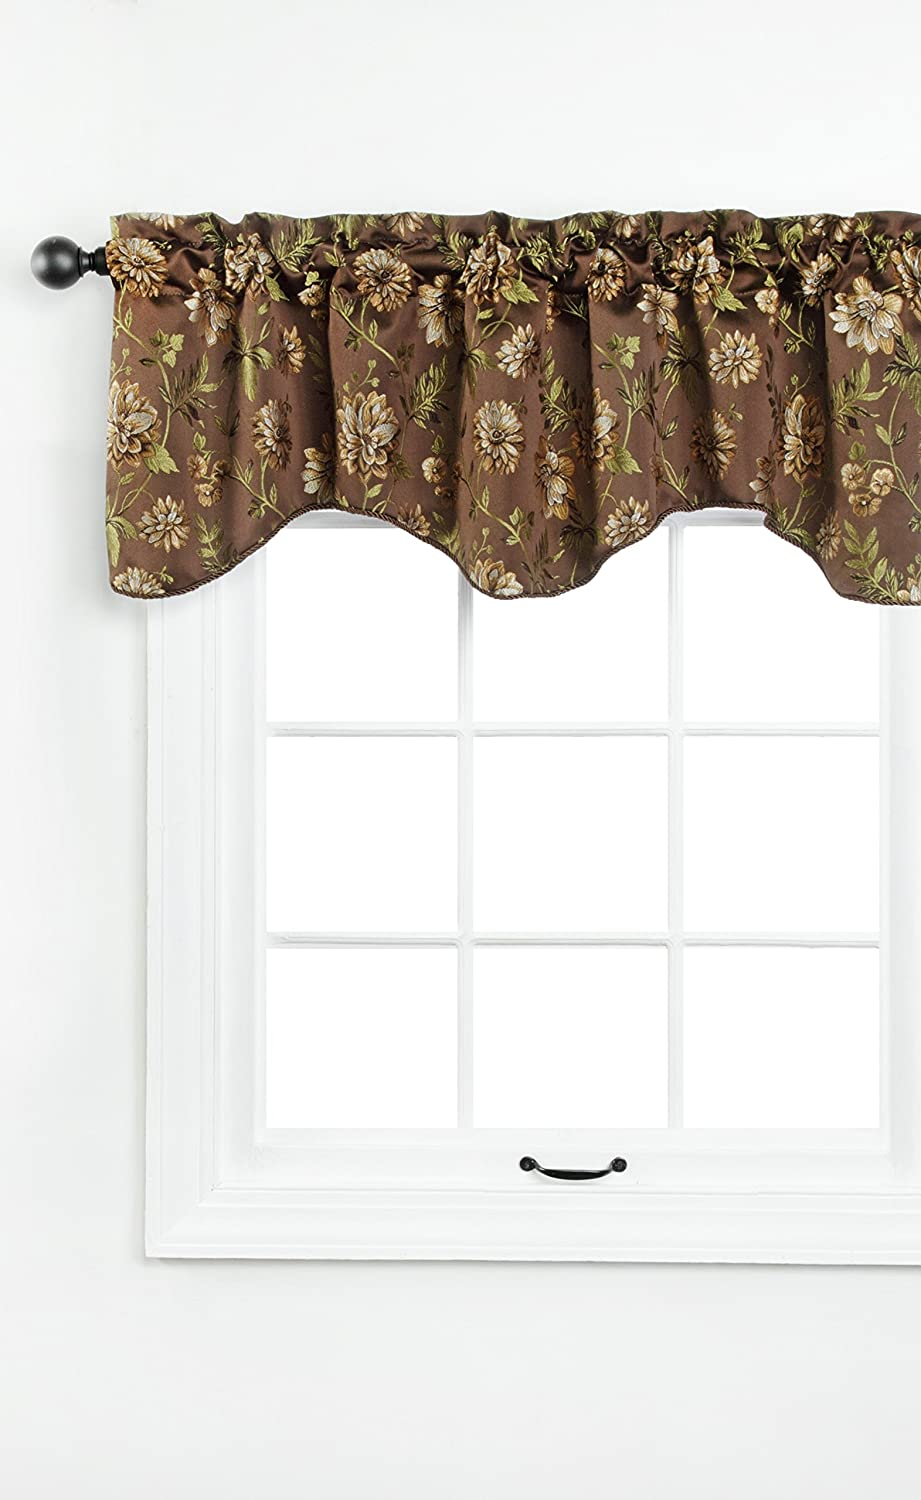 Renaissance Home Fashion Dahlia Lined Scalloped Valance with Cording, 55 by 17